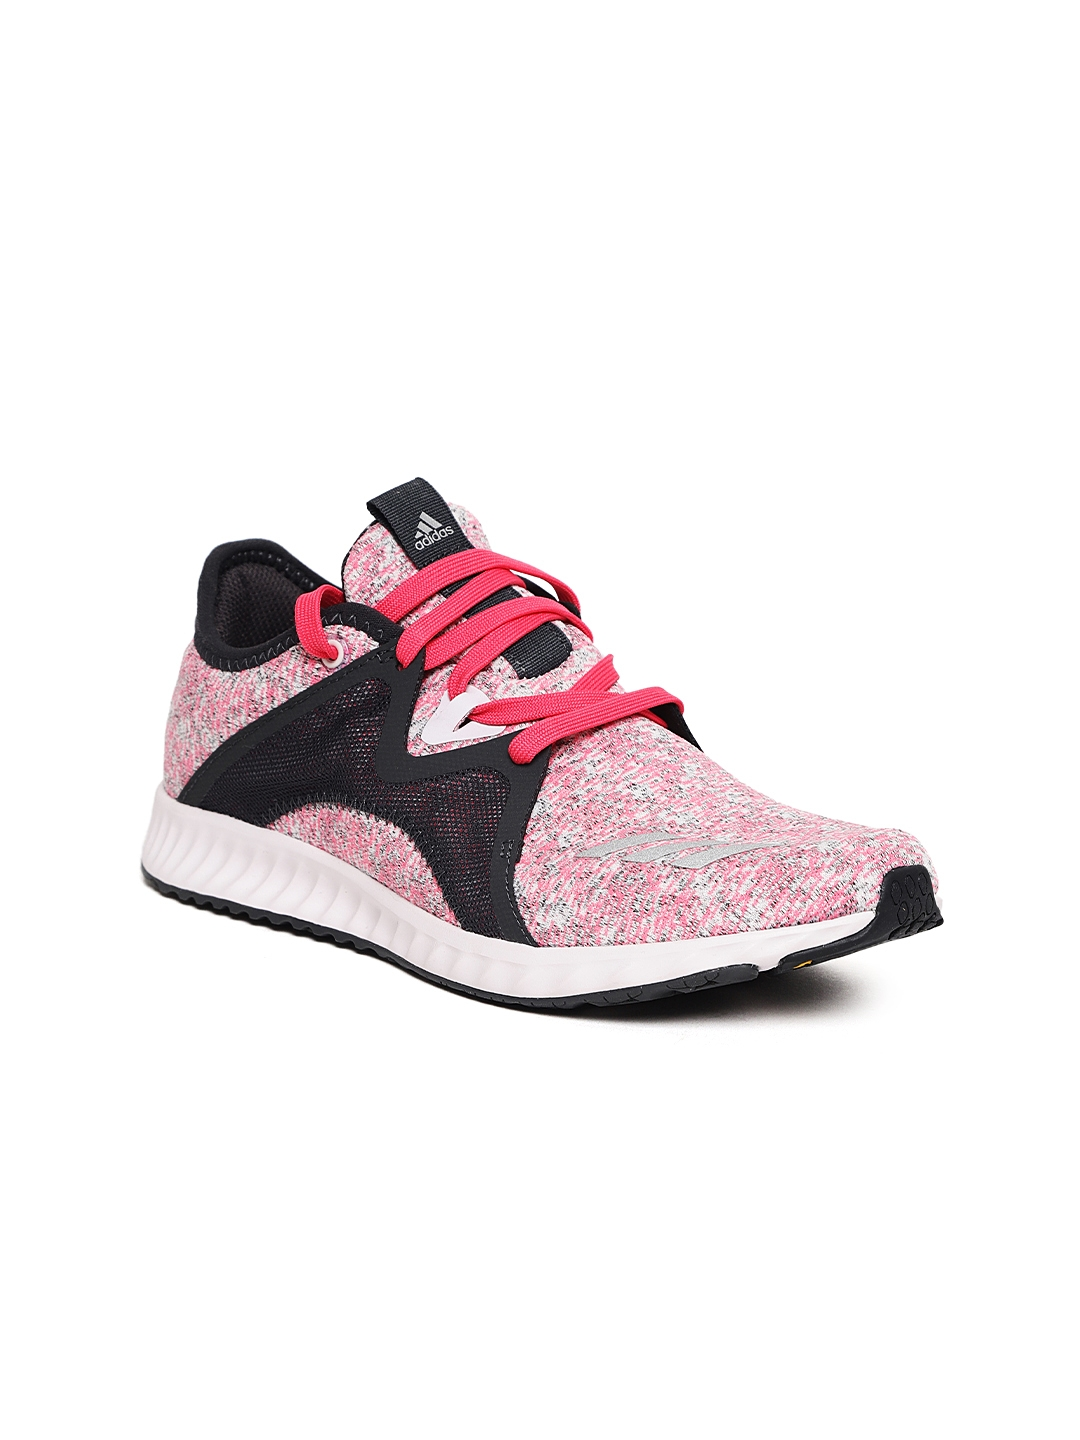 Buy ADIDAS Women Pink   Black Edge Lux 2 Woven Design Running Shoes ... 508cc5051